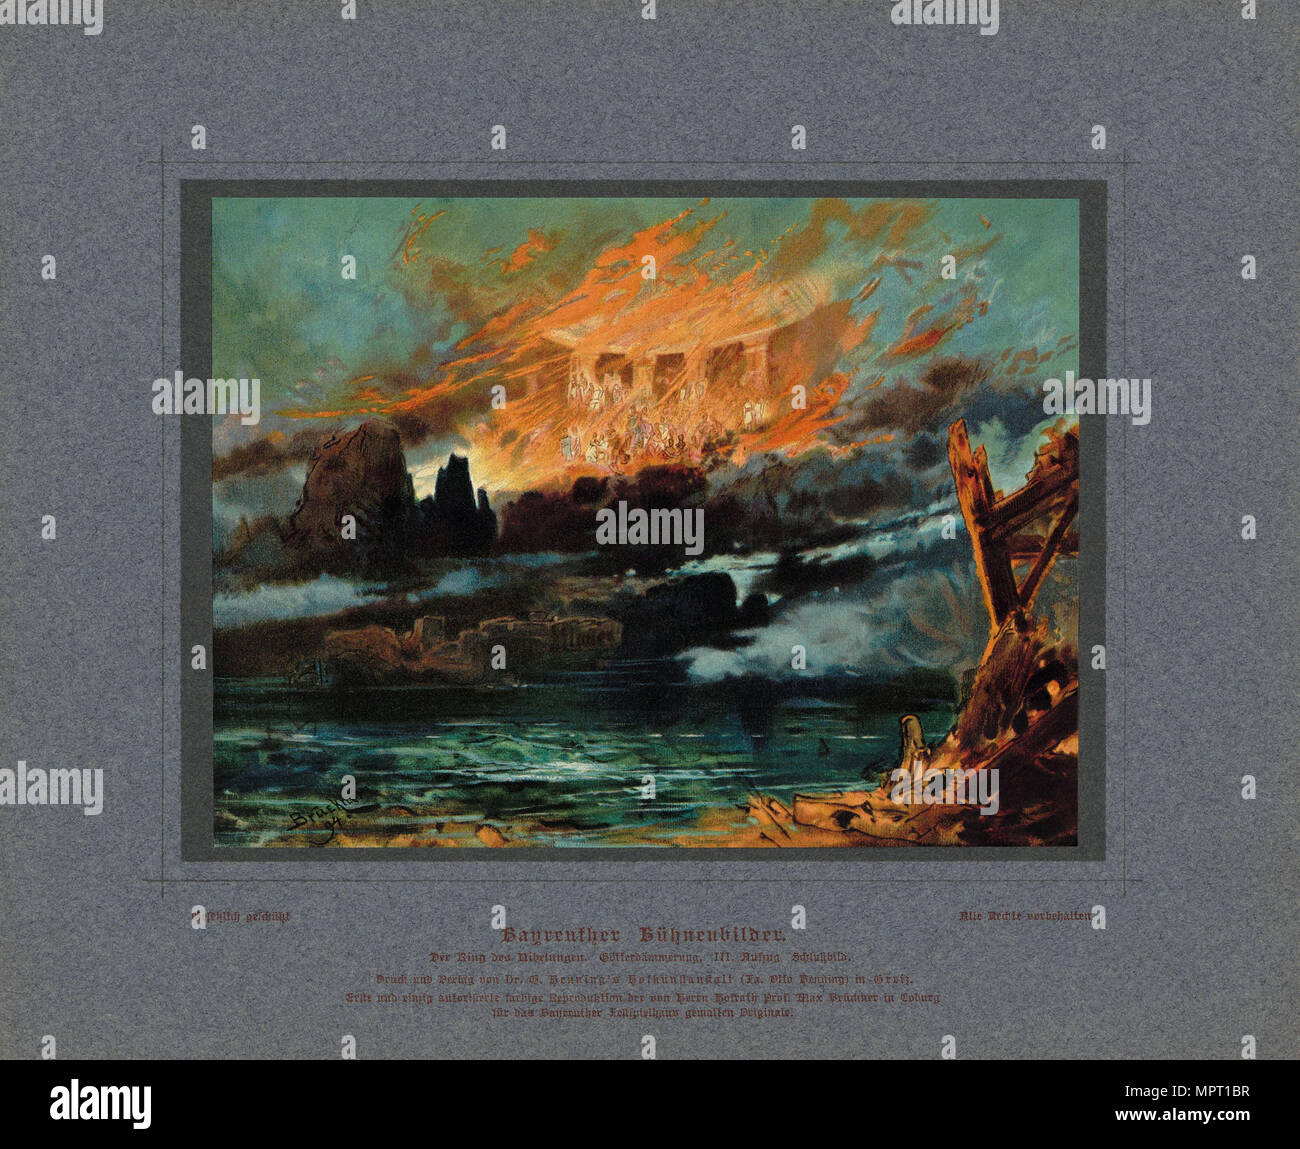 Valhalla on fire. Stage design for the opera Twilight of the Gods by Richard Wagner, 1896. - Stock Image